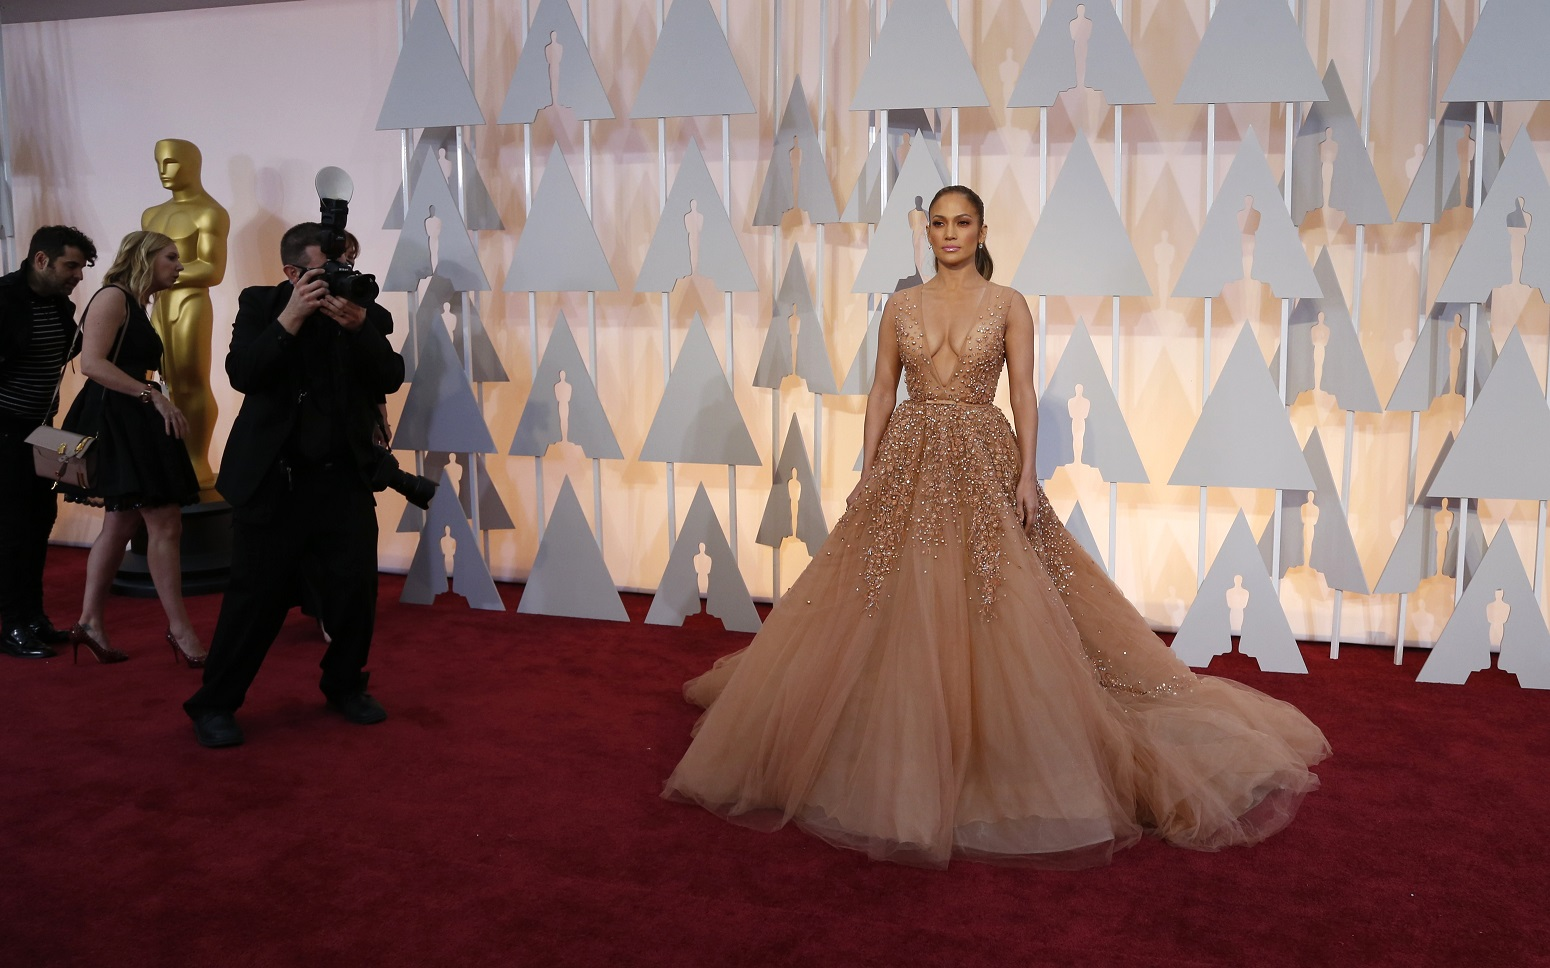 Singer Jennifer Lopez wears a gown by Elie Saab as she arrives at the 87th Academy Awards in Hollywood